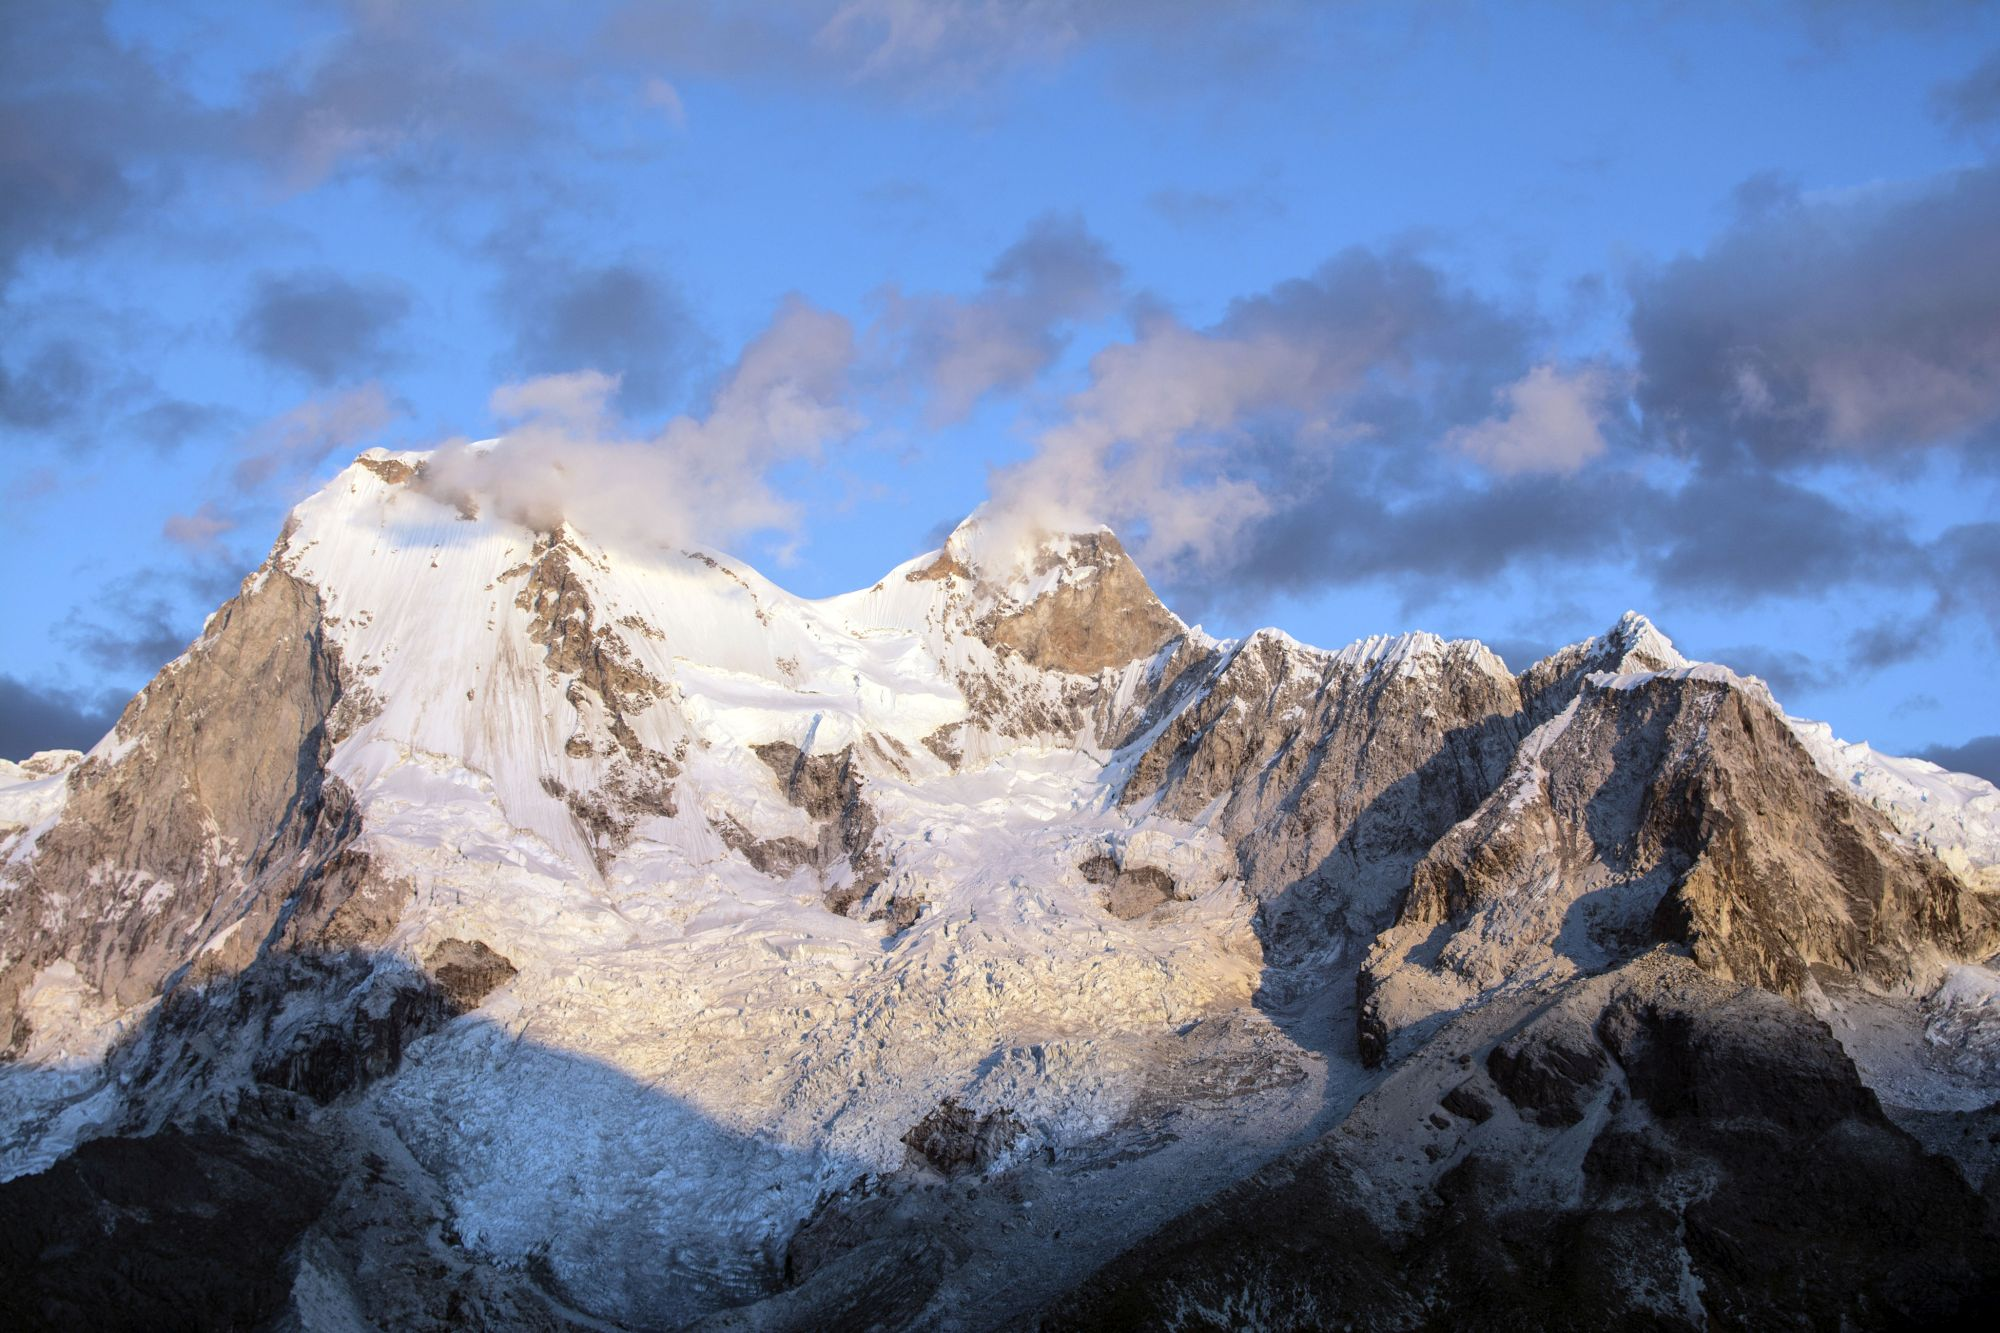 Snow-capped peaks in the Peruvian Andes, Huascaran National Park (BBC/Matthew Wright/PA)